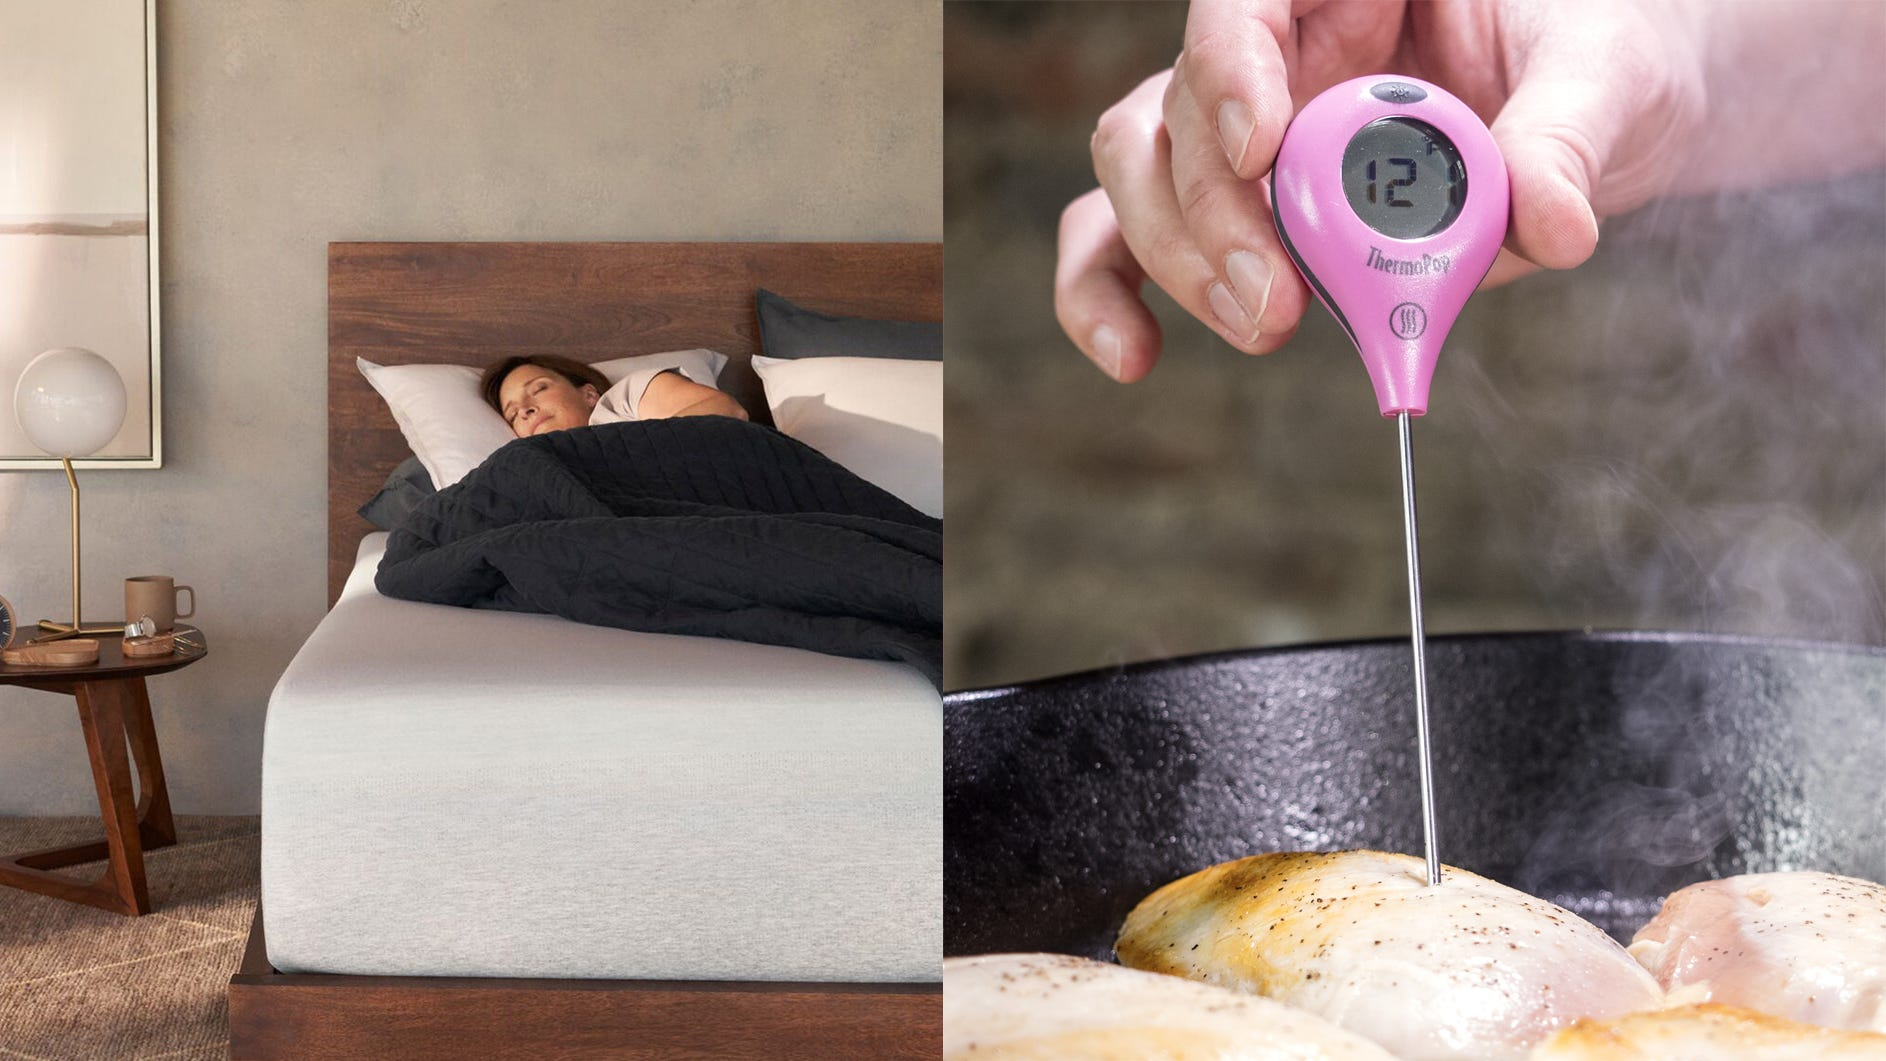 10 incredible sales on home decor, cookware, mattresses, and more